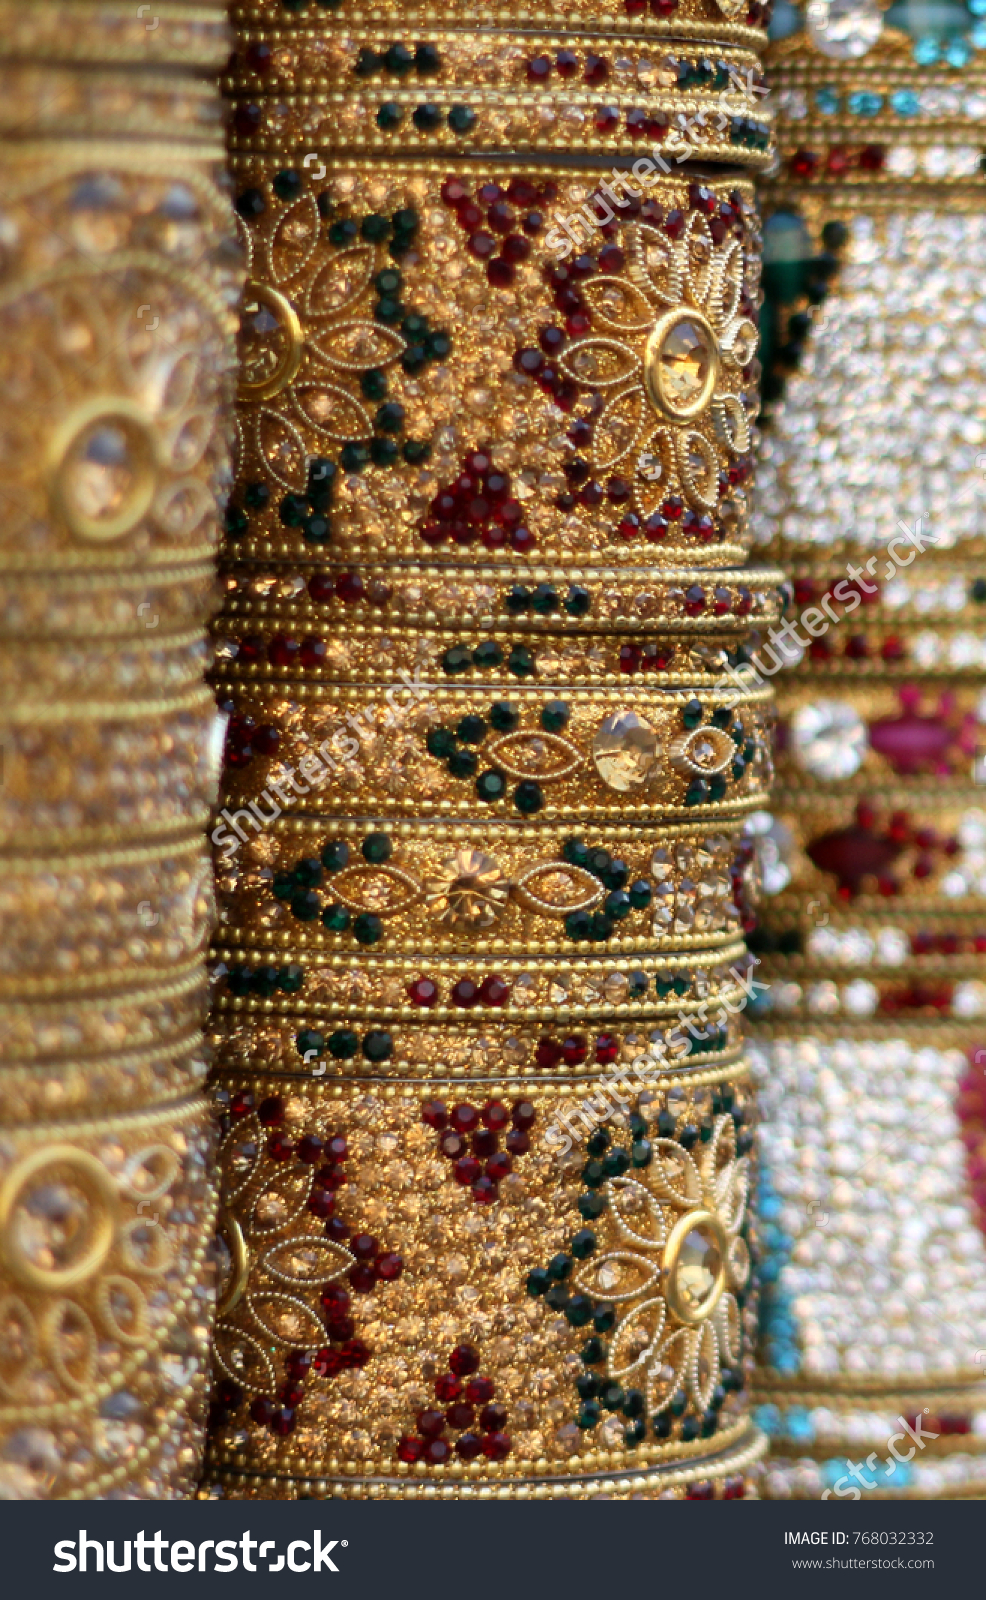 and shop photos bracelets bangles india desktop of bangle shanti backgrounds images